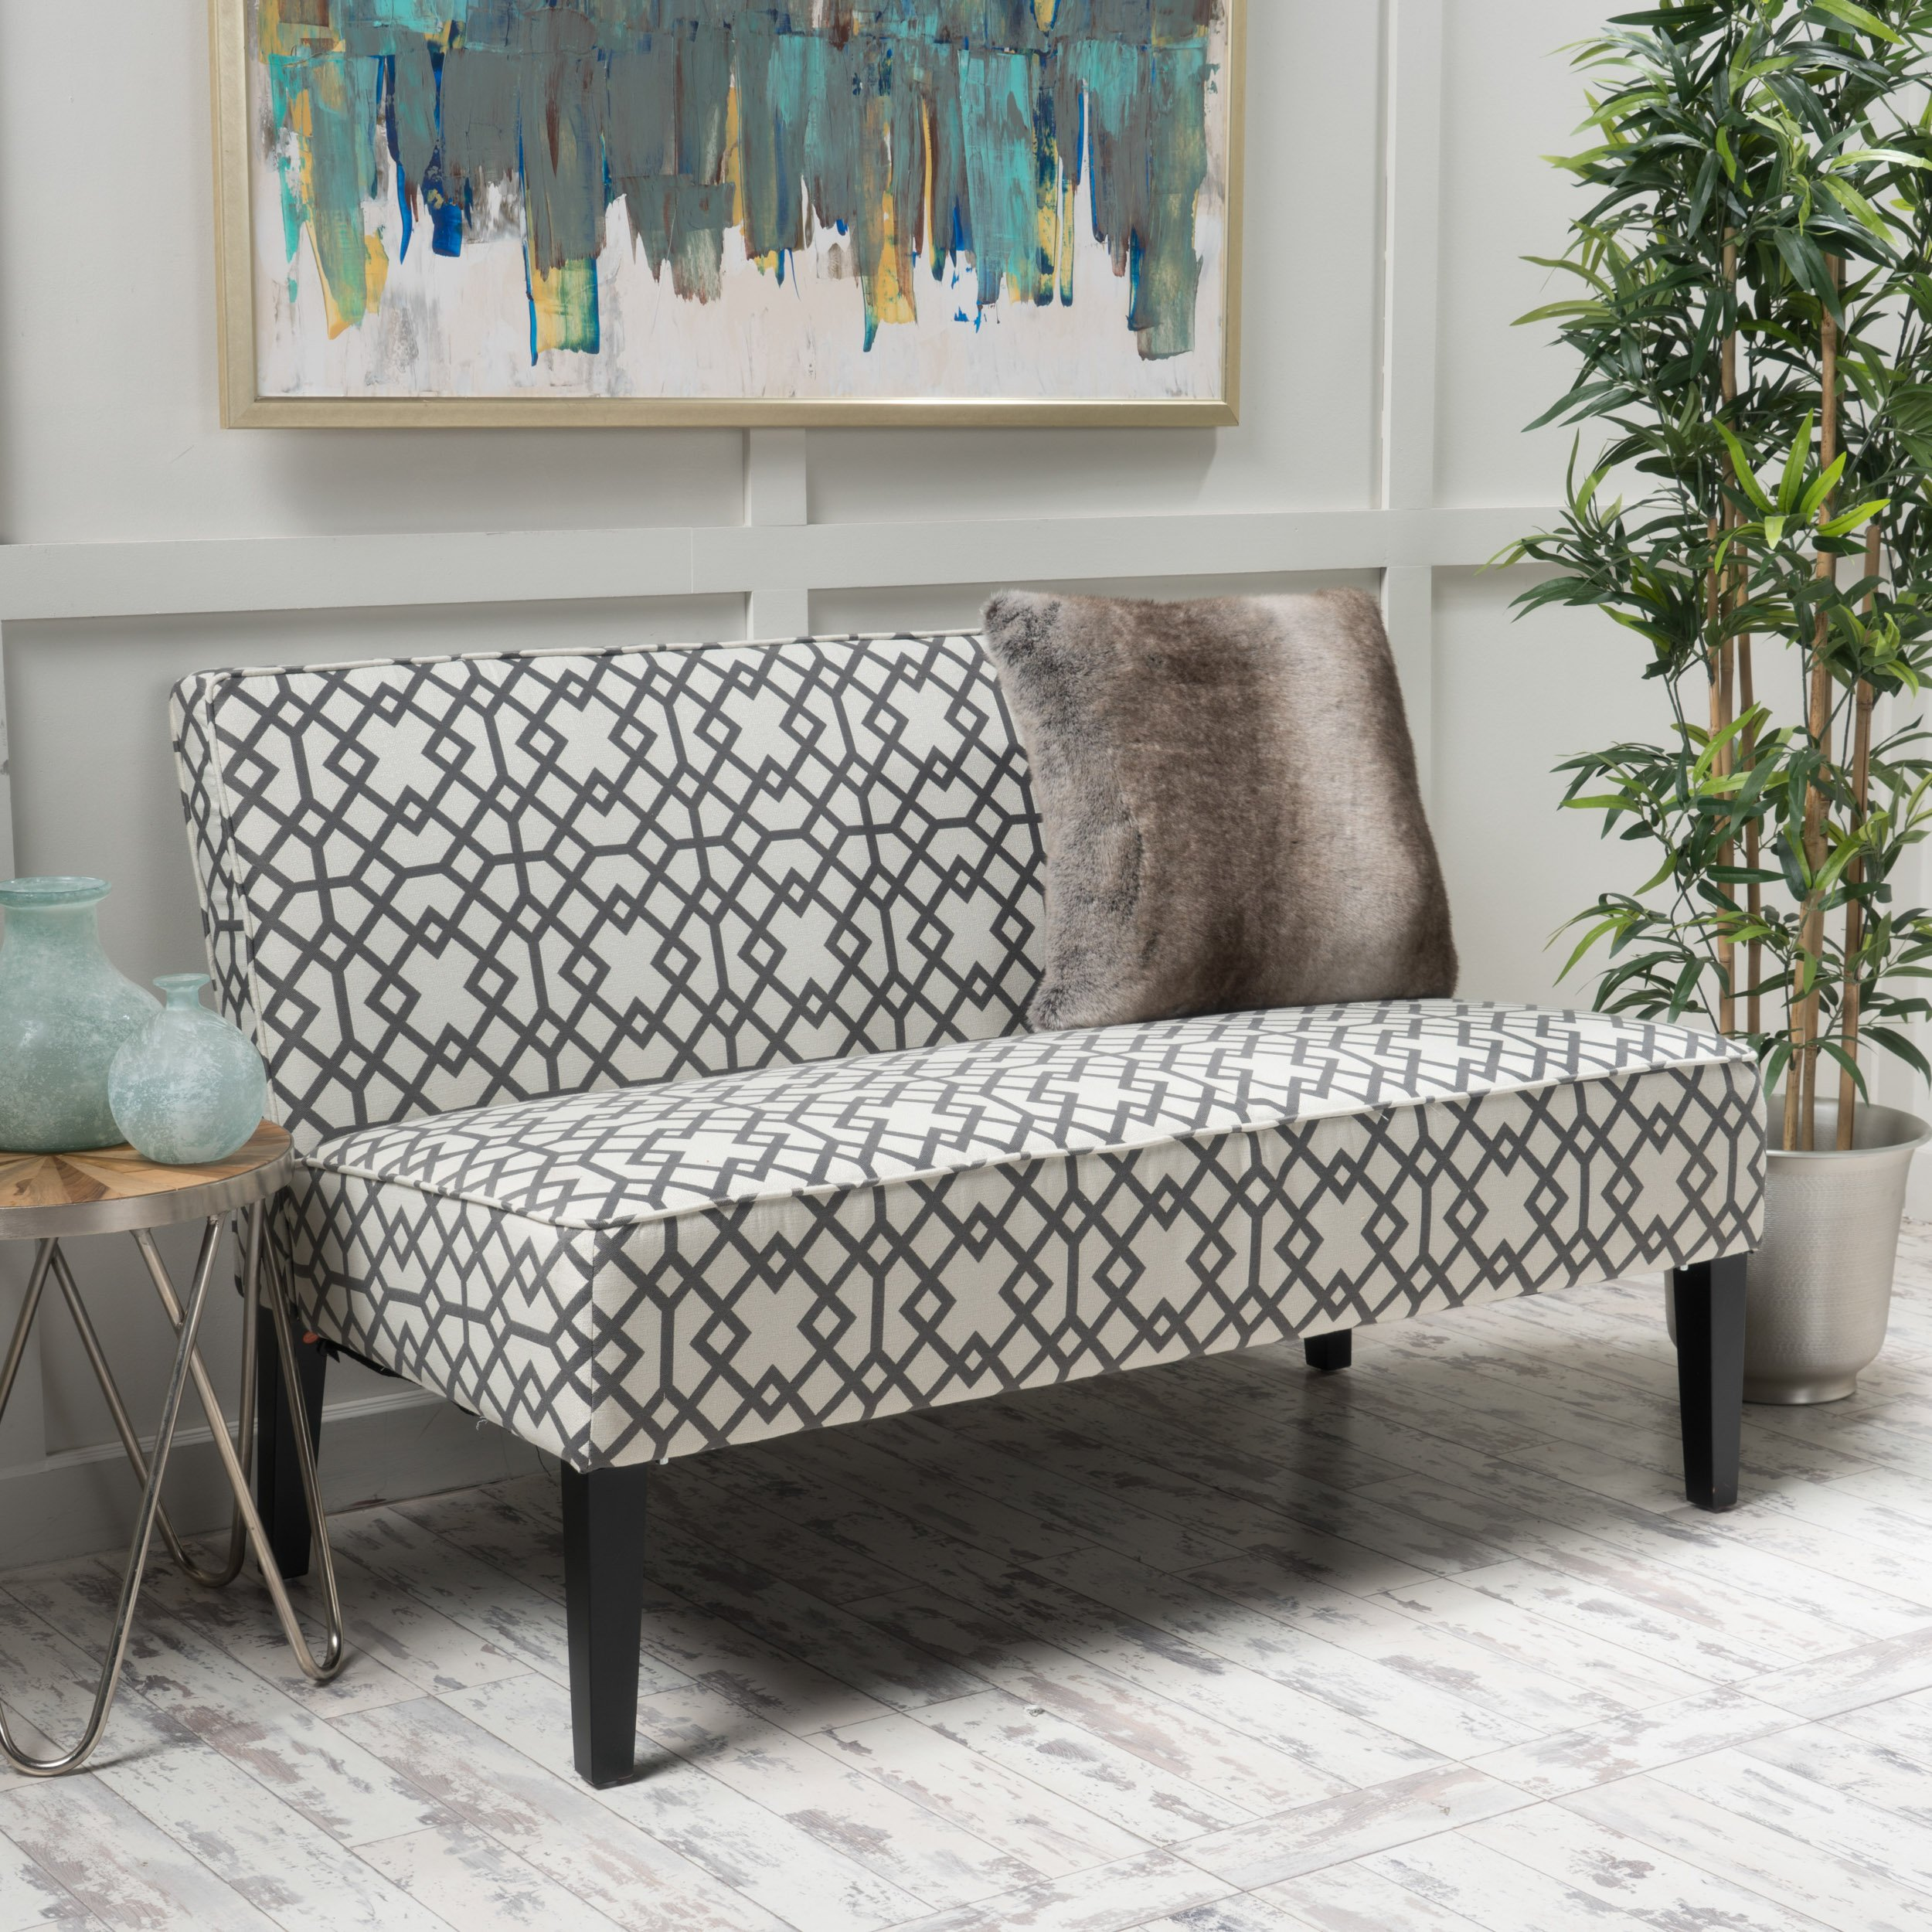 Christopher Knight Home 299747 Charlotte Grey Geometric Patterned Fabric Love Seat by Christopher Knight Home